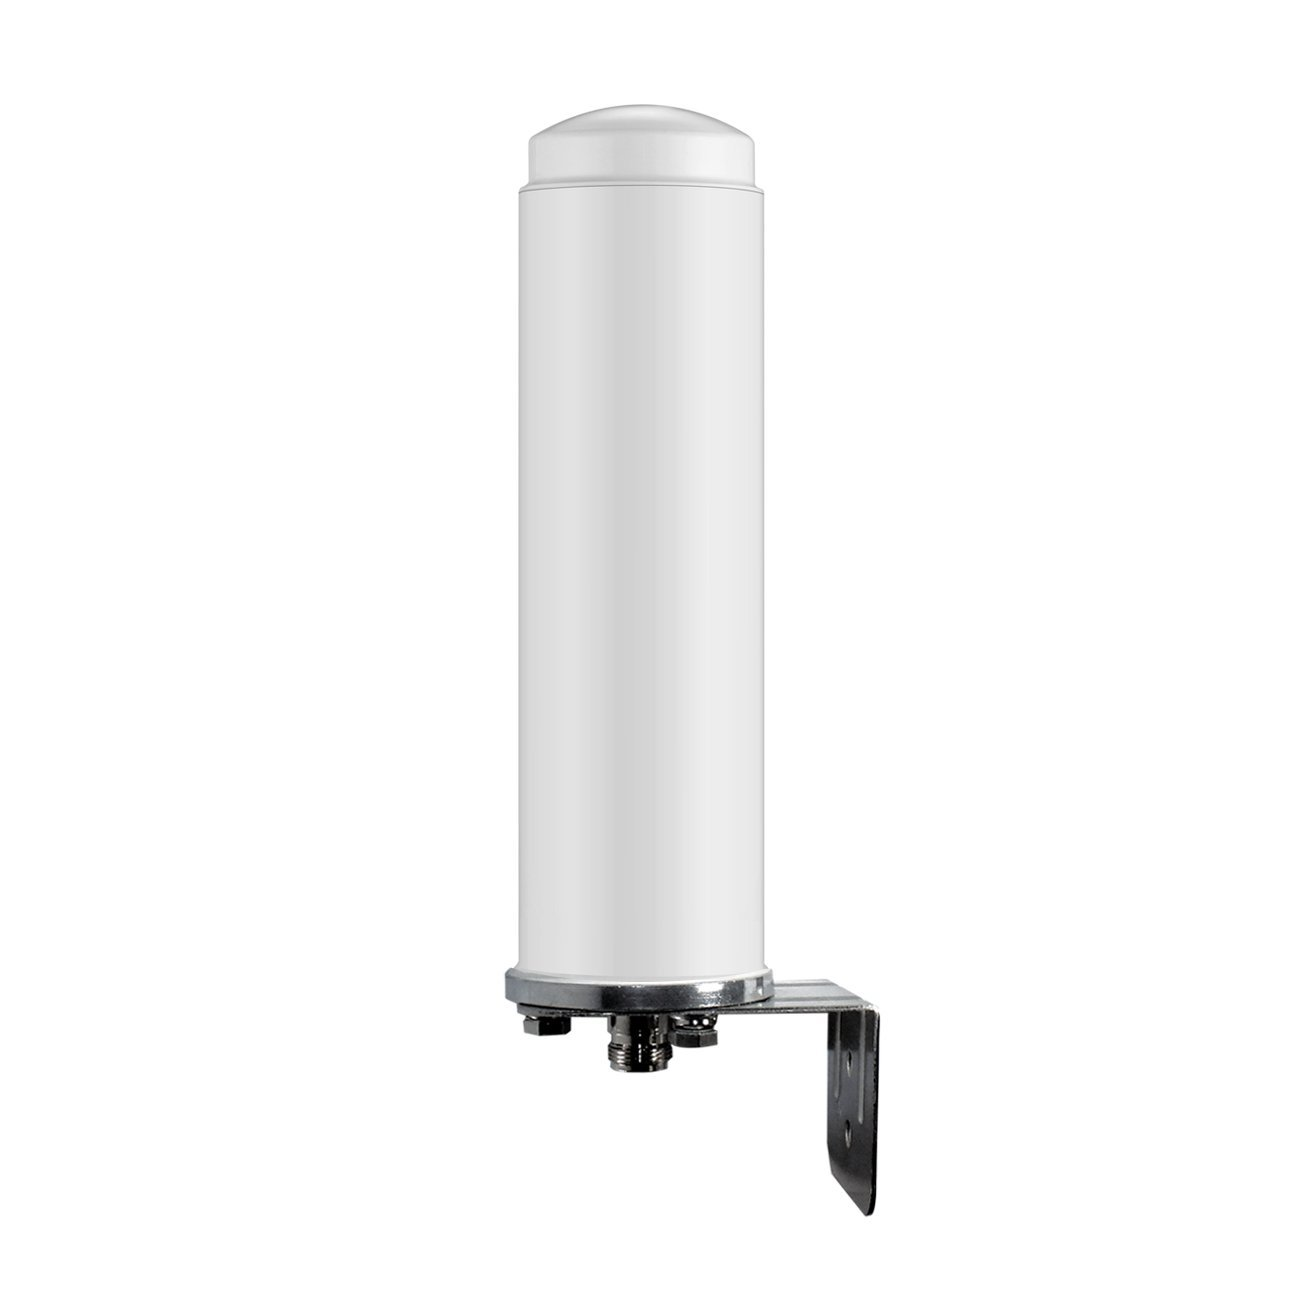 SureCall Wide Band Omni-Directional 50 Ohm Outdoor Antenna with N-Female Connector - White by SureCall (Image #1)